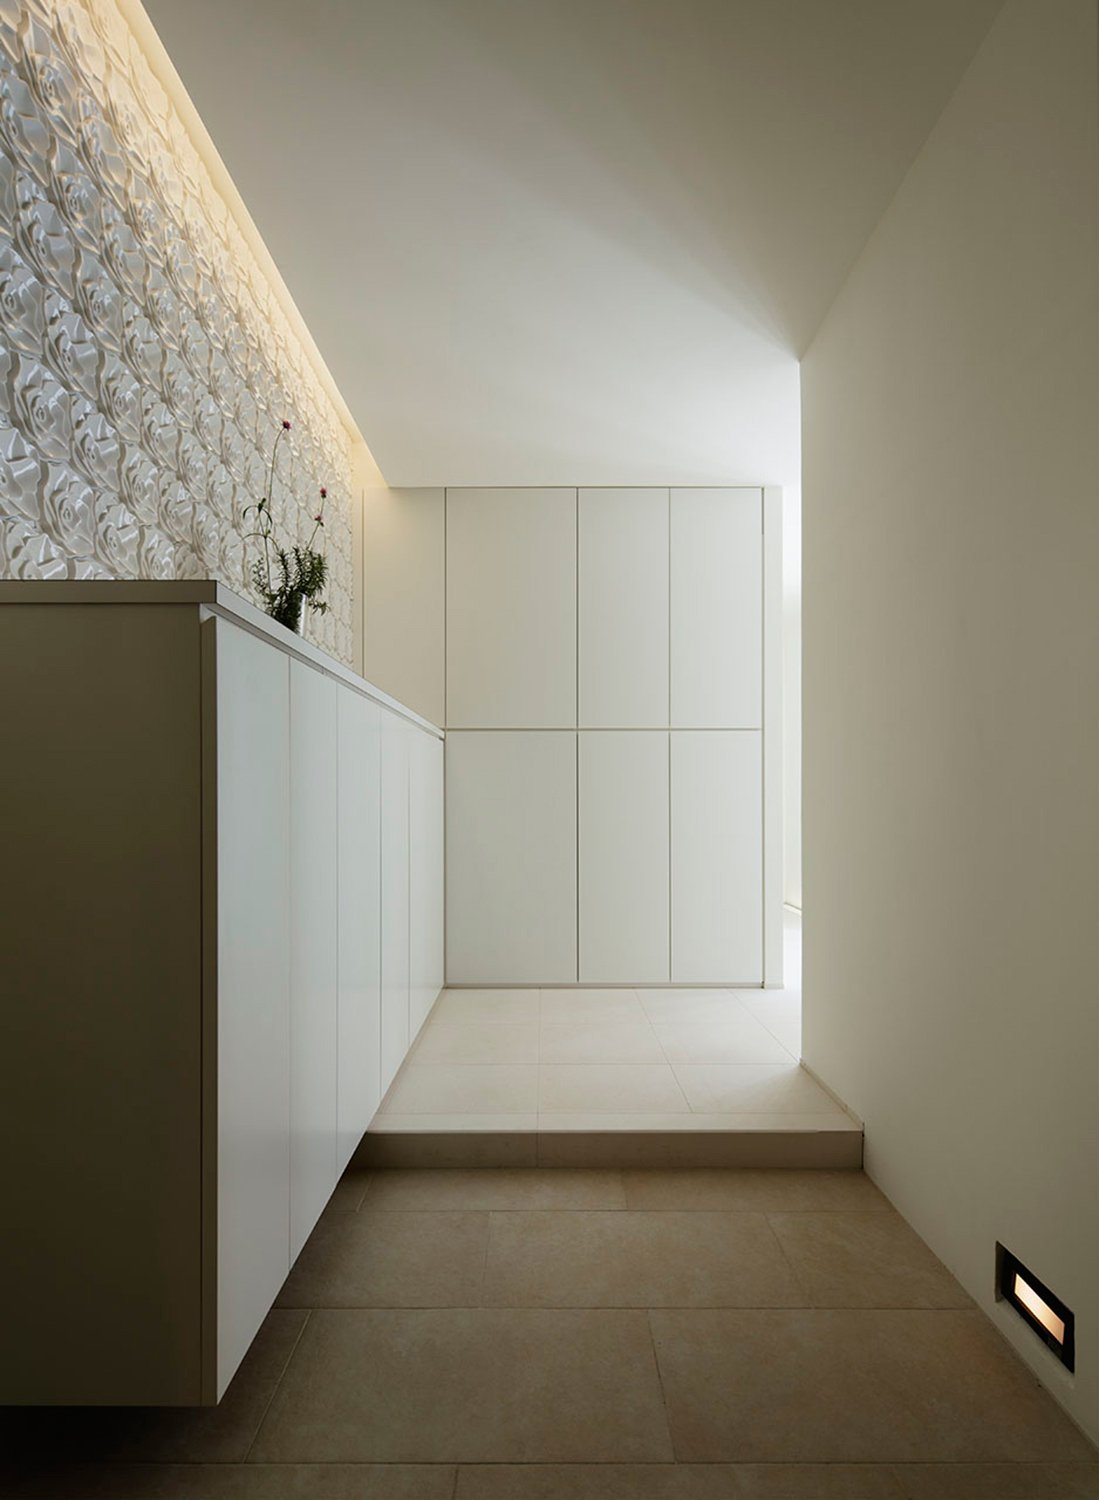 Entrance. A refined space with no waste. }